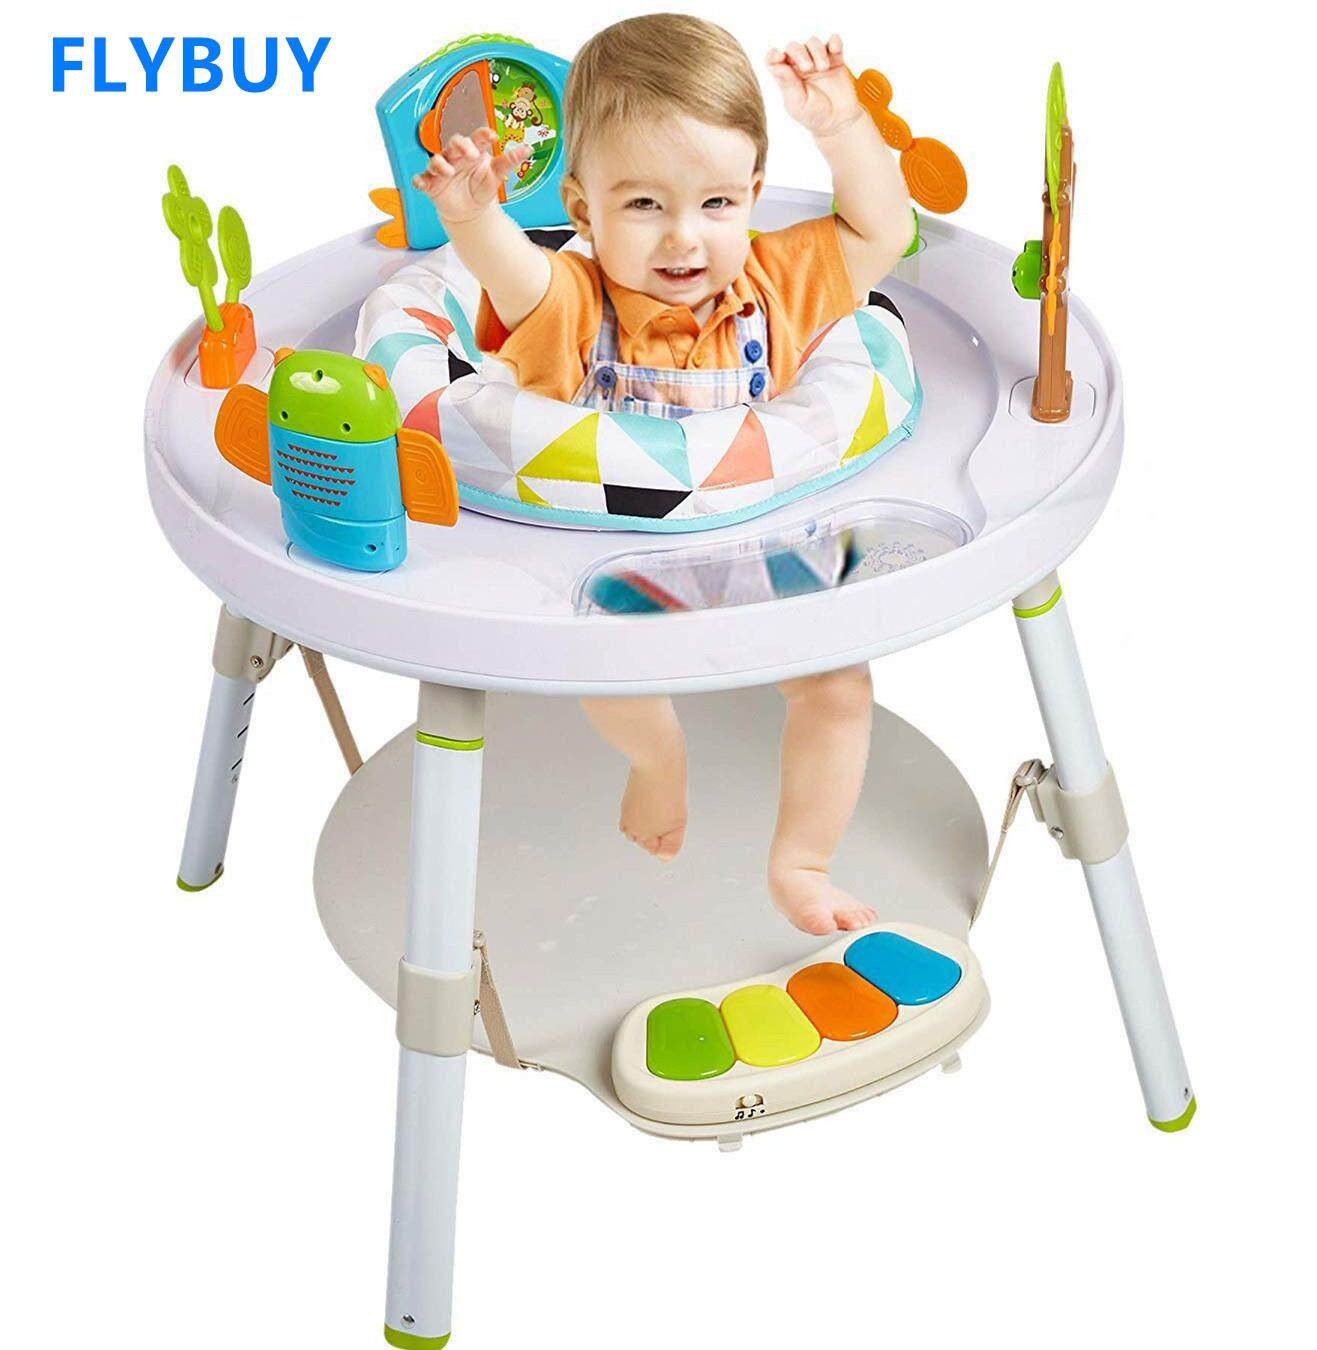 Baby 3 Stage Activity Center Sit Stand Play Table 360 Degree Rotating Play Chair Jumperoo baby toys kids toys